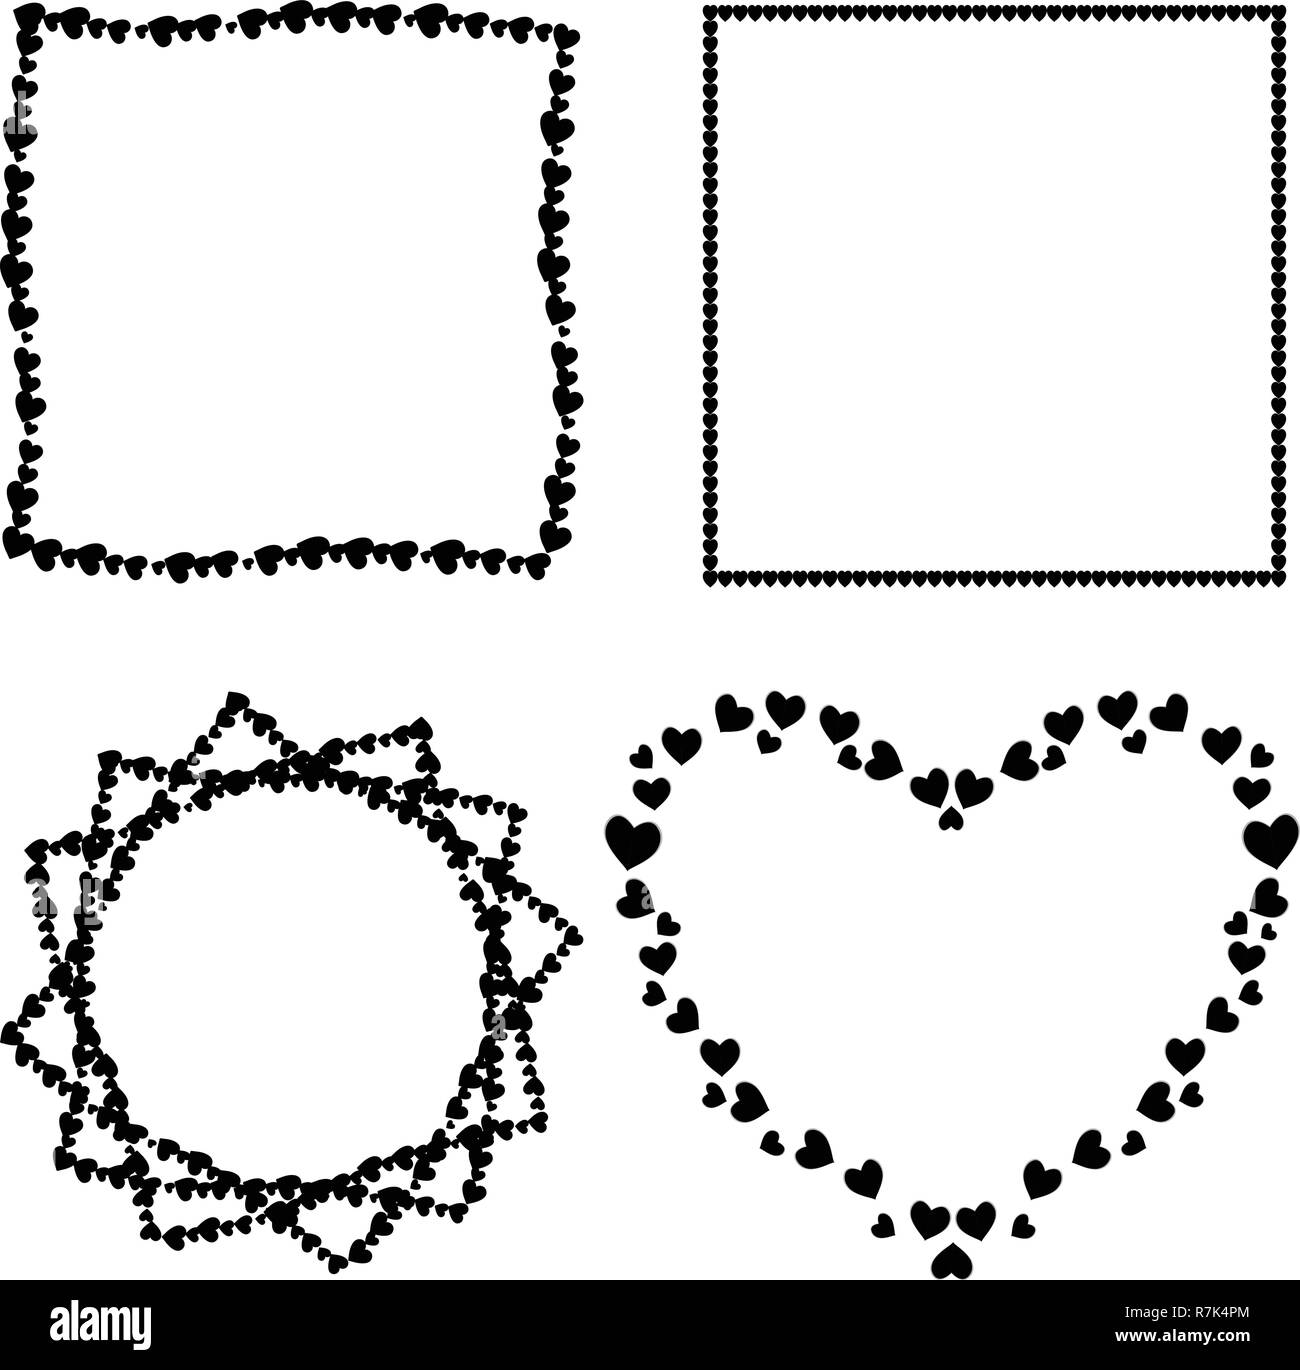 Vector set of cute black love hearts photo frames for valentine, wedding romantic design. Template for greeting card, invitation, collection for scrap - Stock Vector